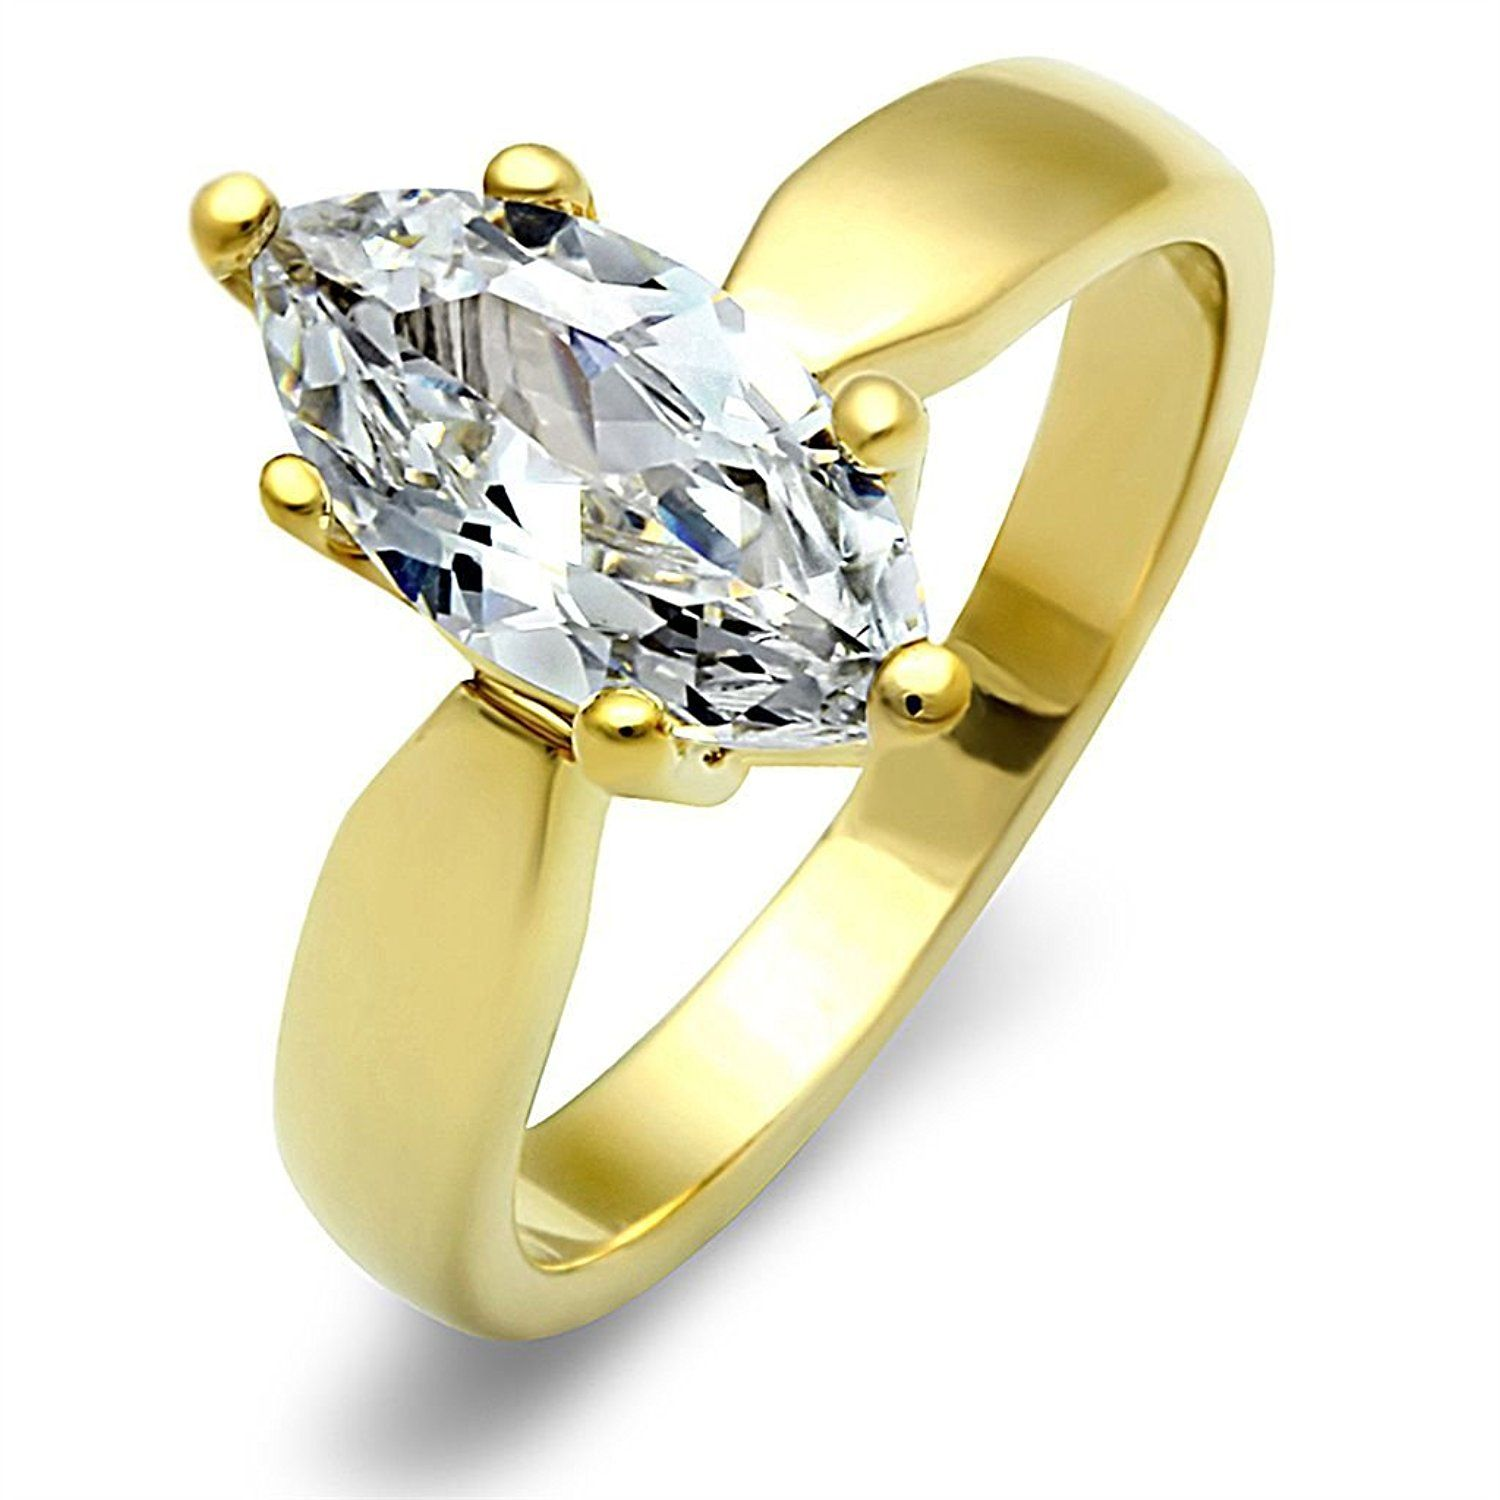 Yourjewellerybox TK1673 MARQUISE SOLITAIRE ENGAGEMENT SIMULATED DIAMOND RING WOMENS STEEL GOLD DI1zBOV1Y5